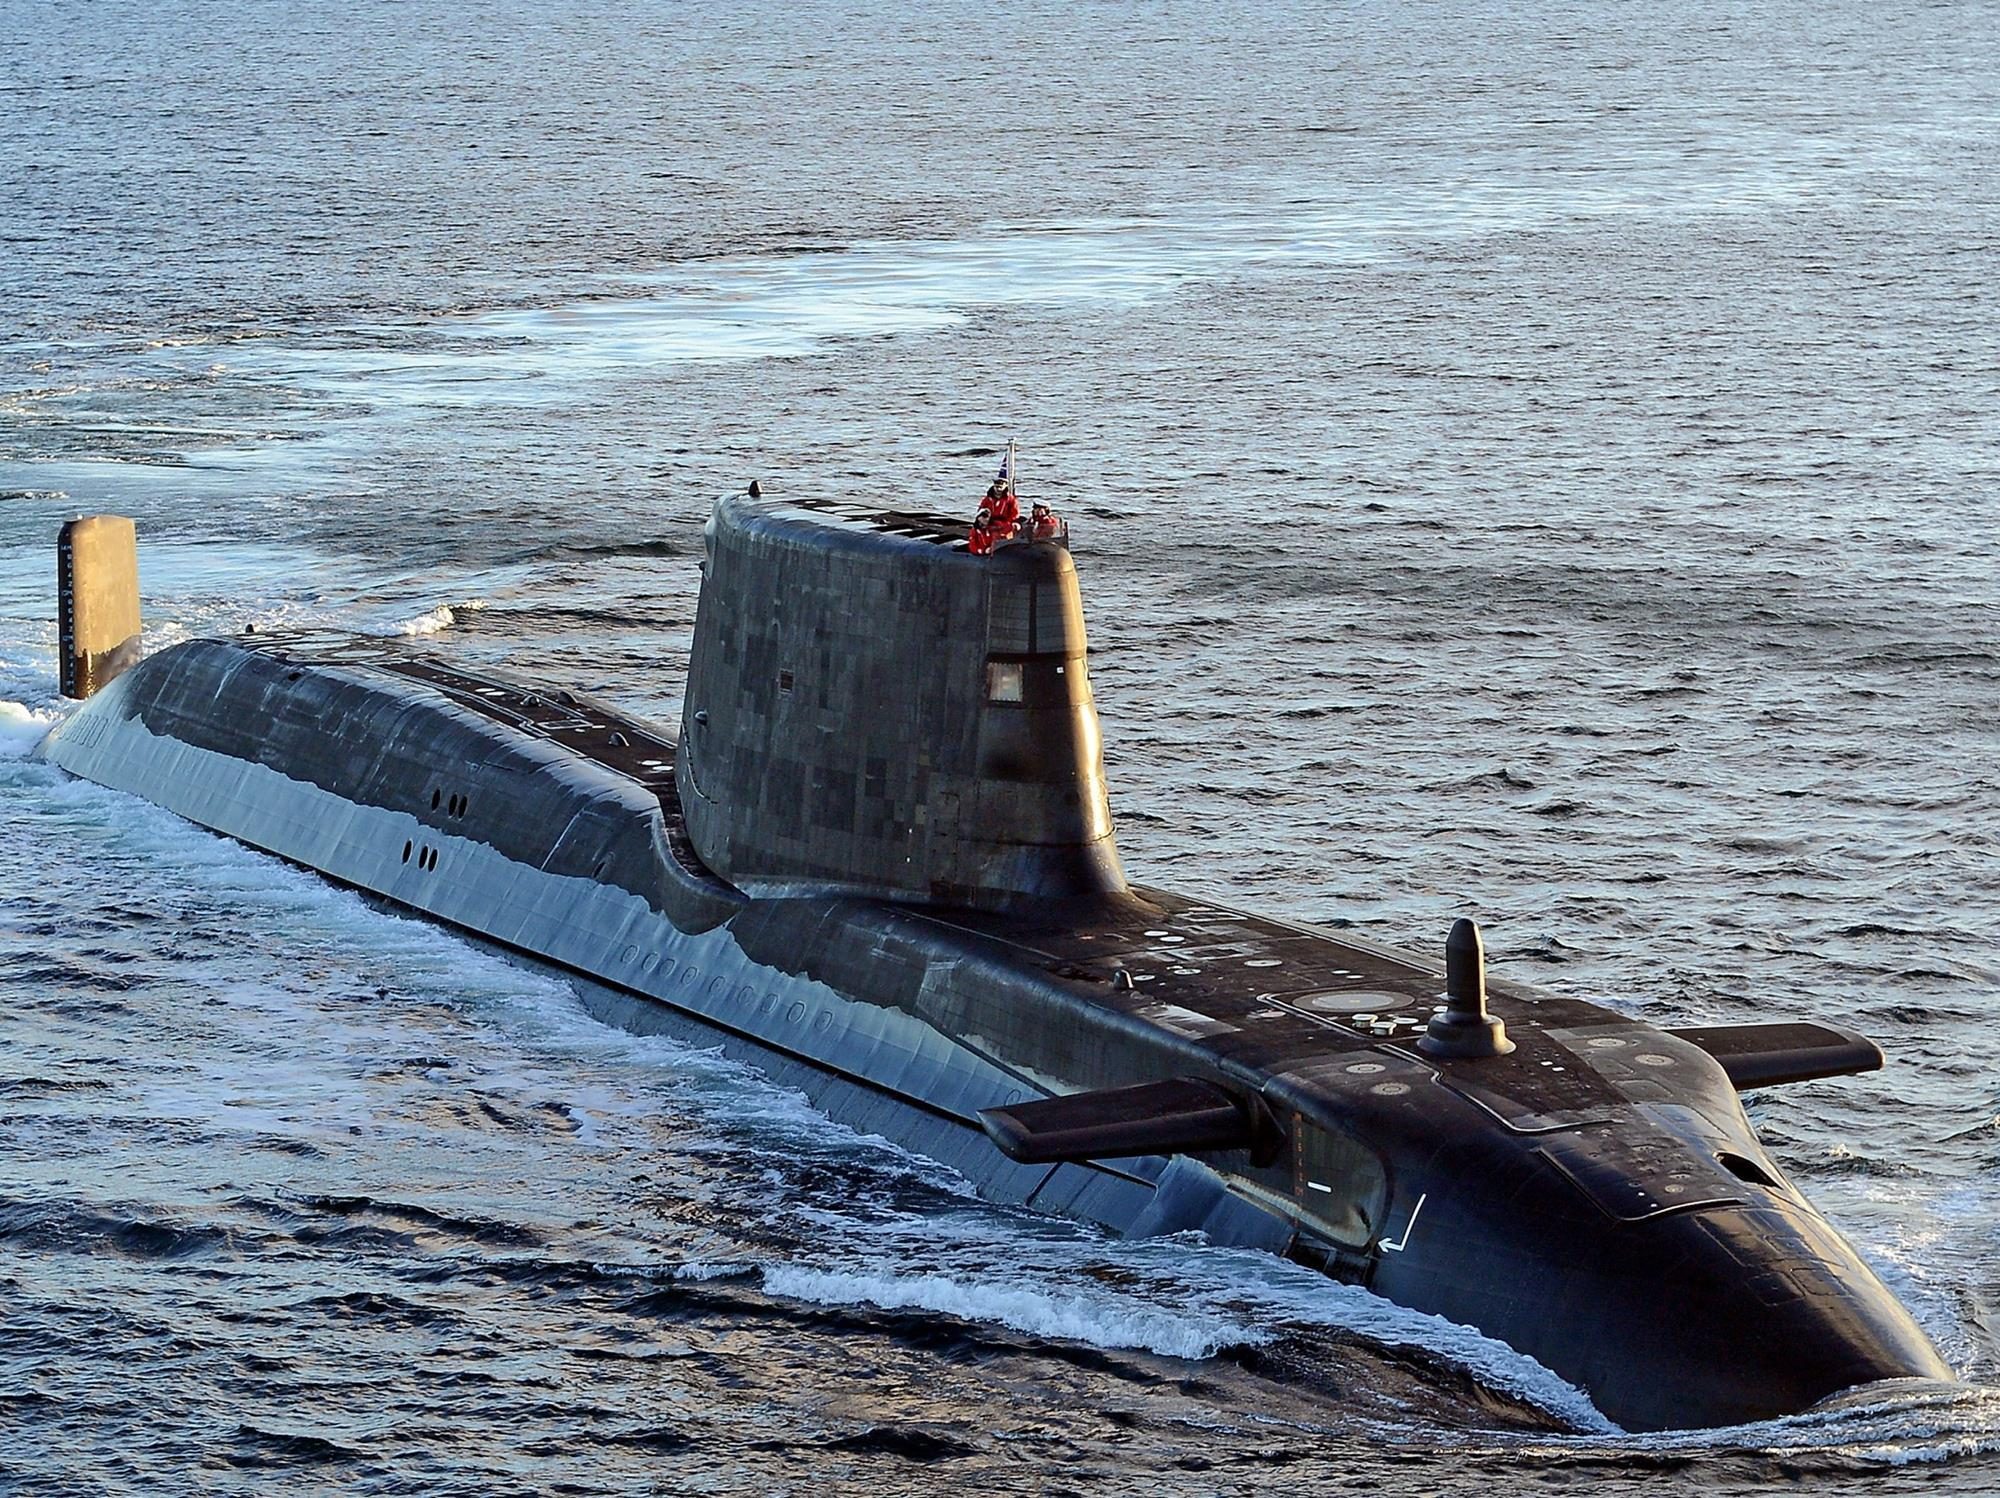 How do you scrap a nuclear submarine? | News | Chemistry World